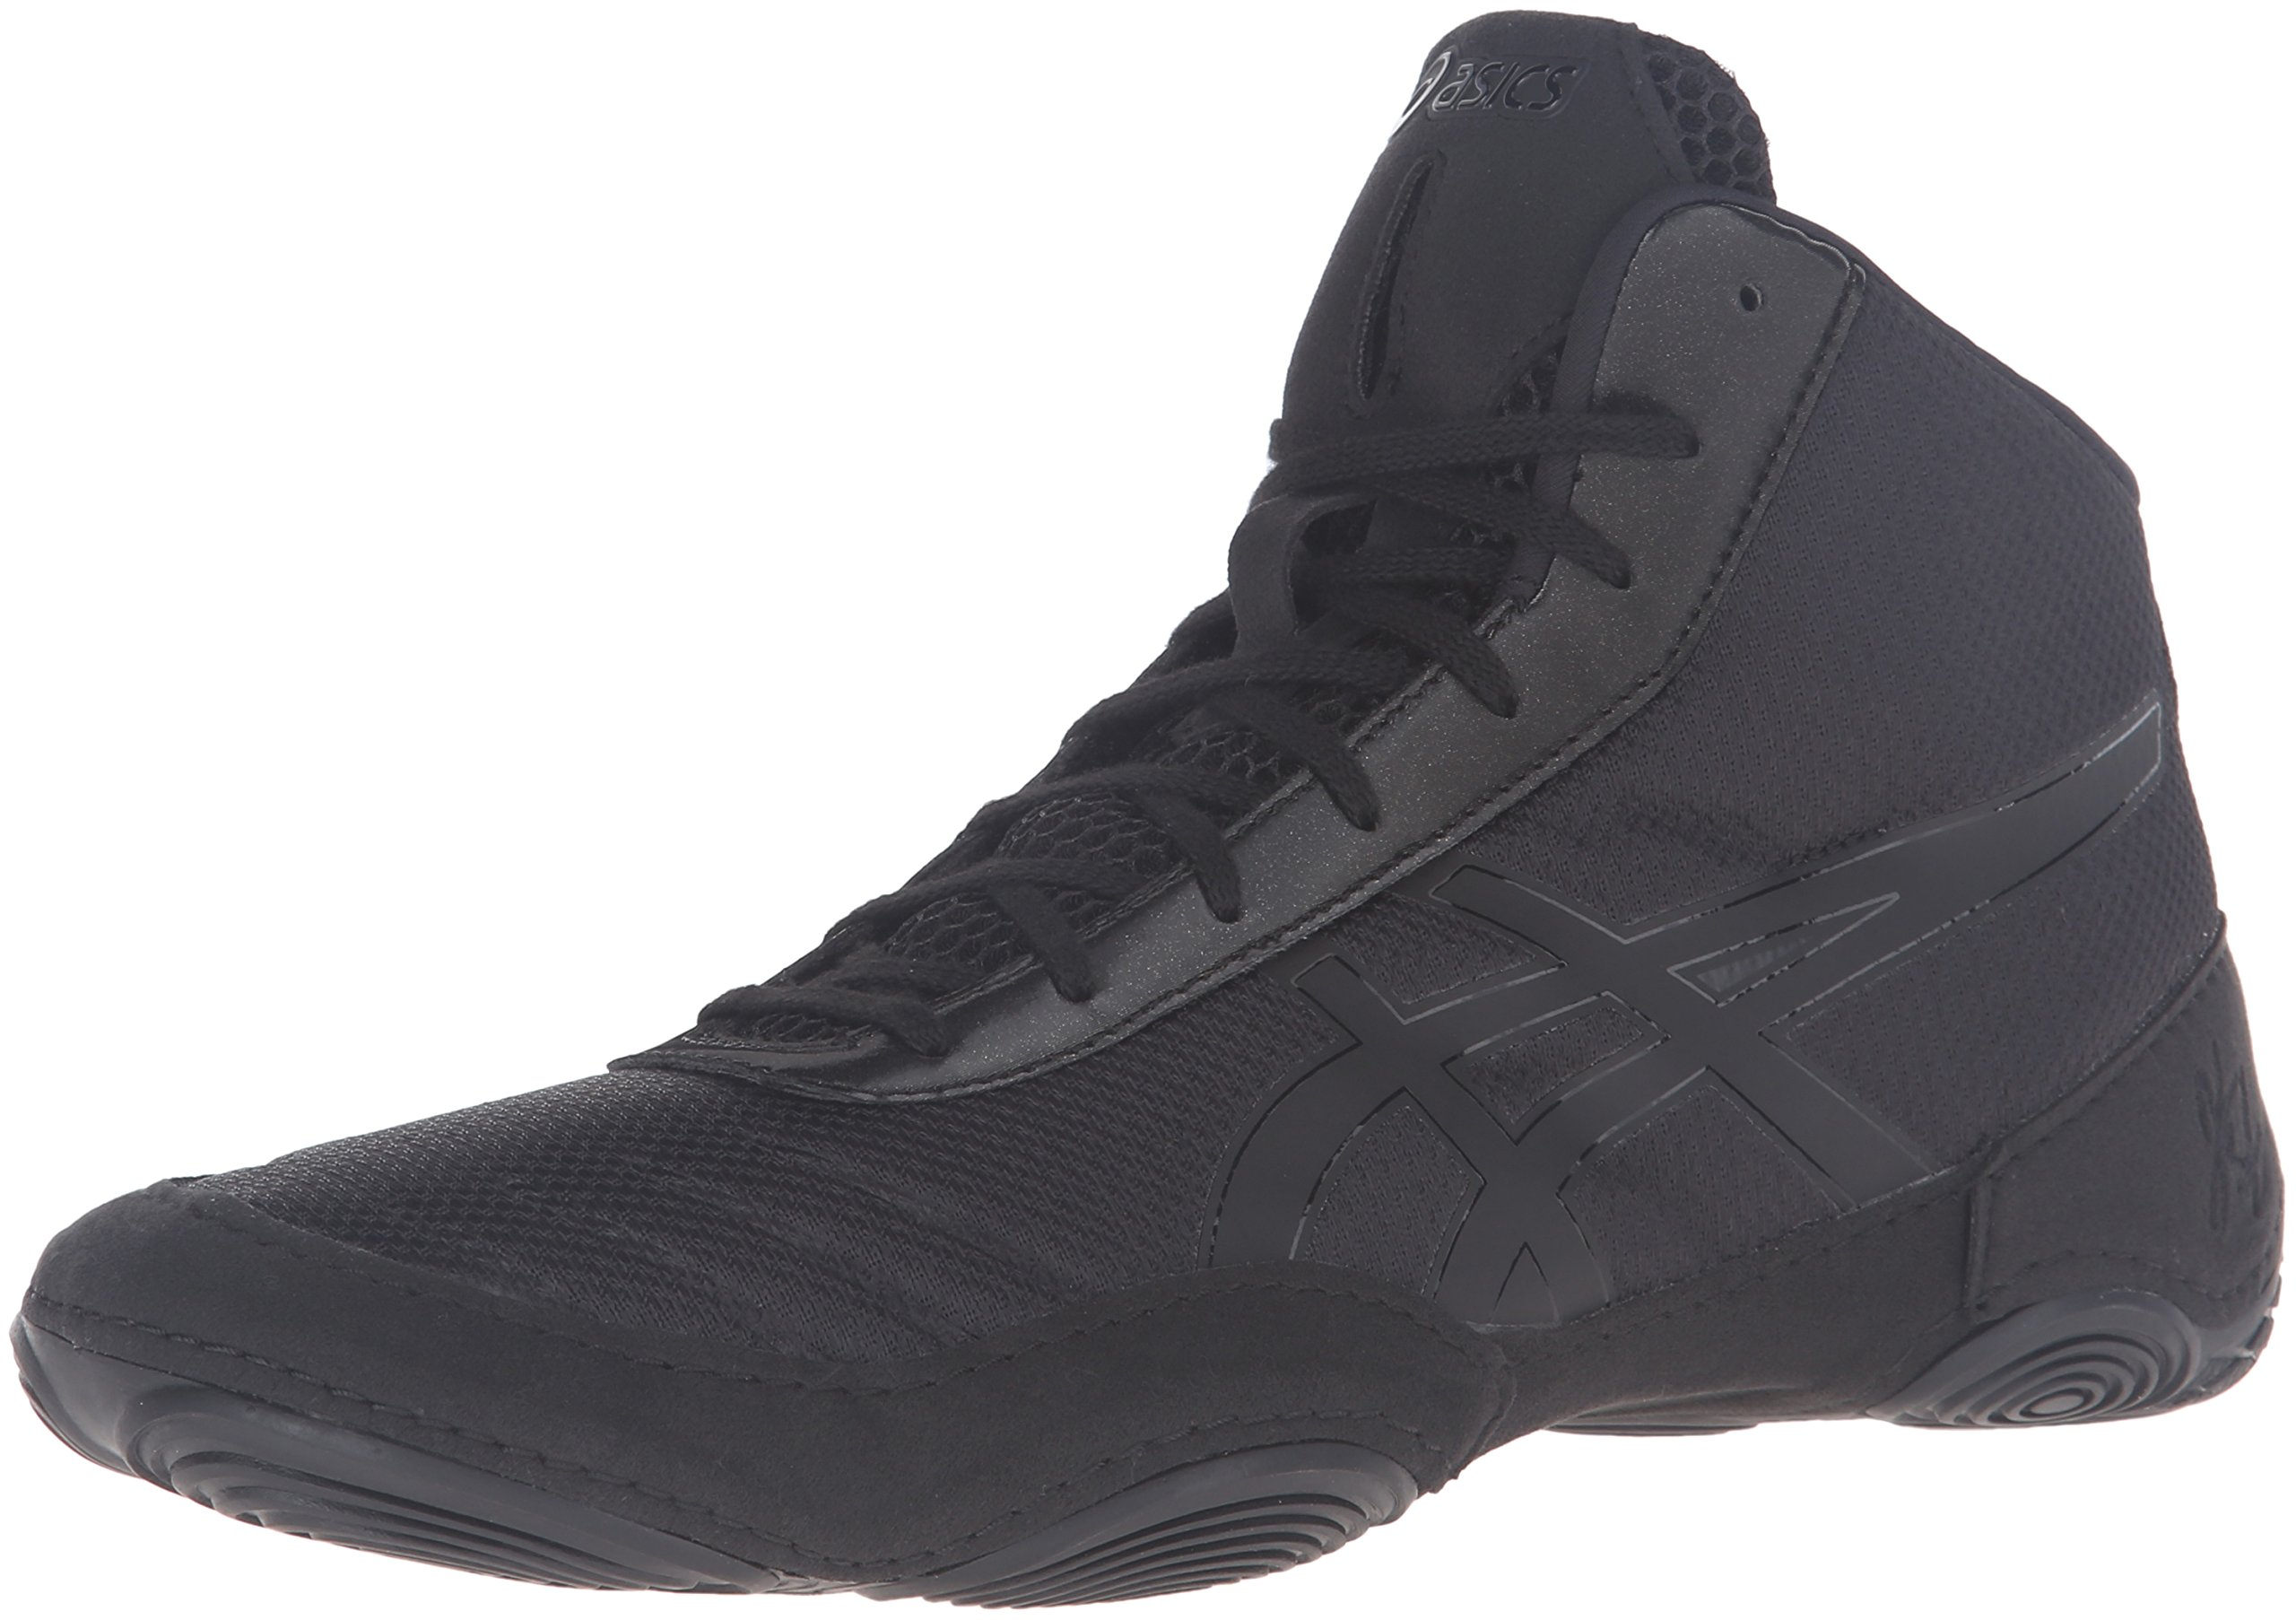 ASICS Men's JB Elite V2.0 Wrestling Shoe, Black/Onyx, 11.5 M US